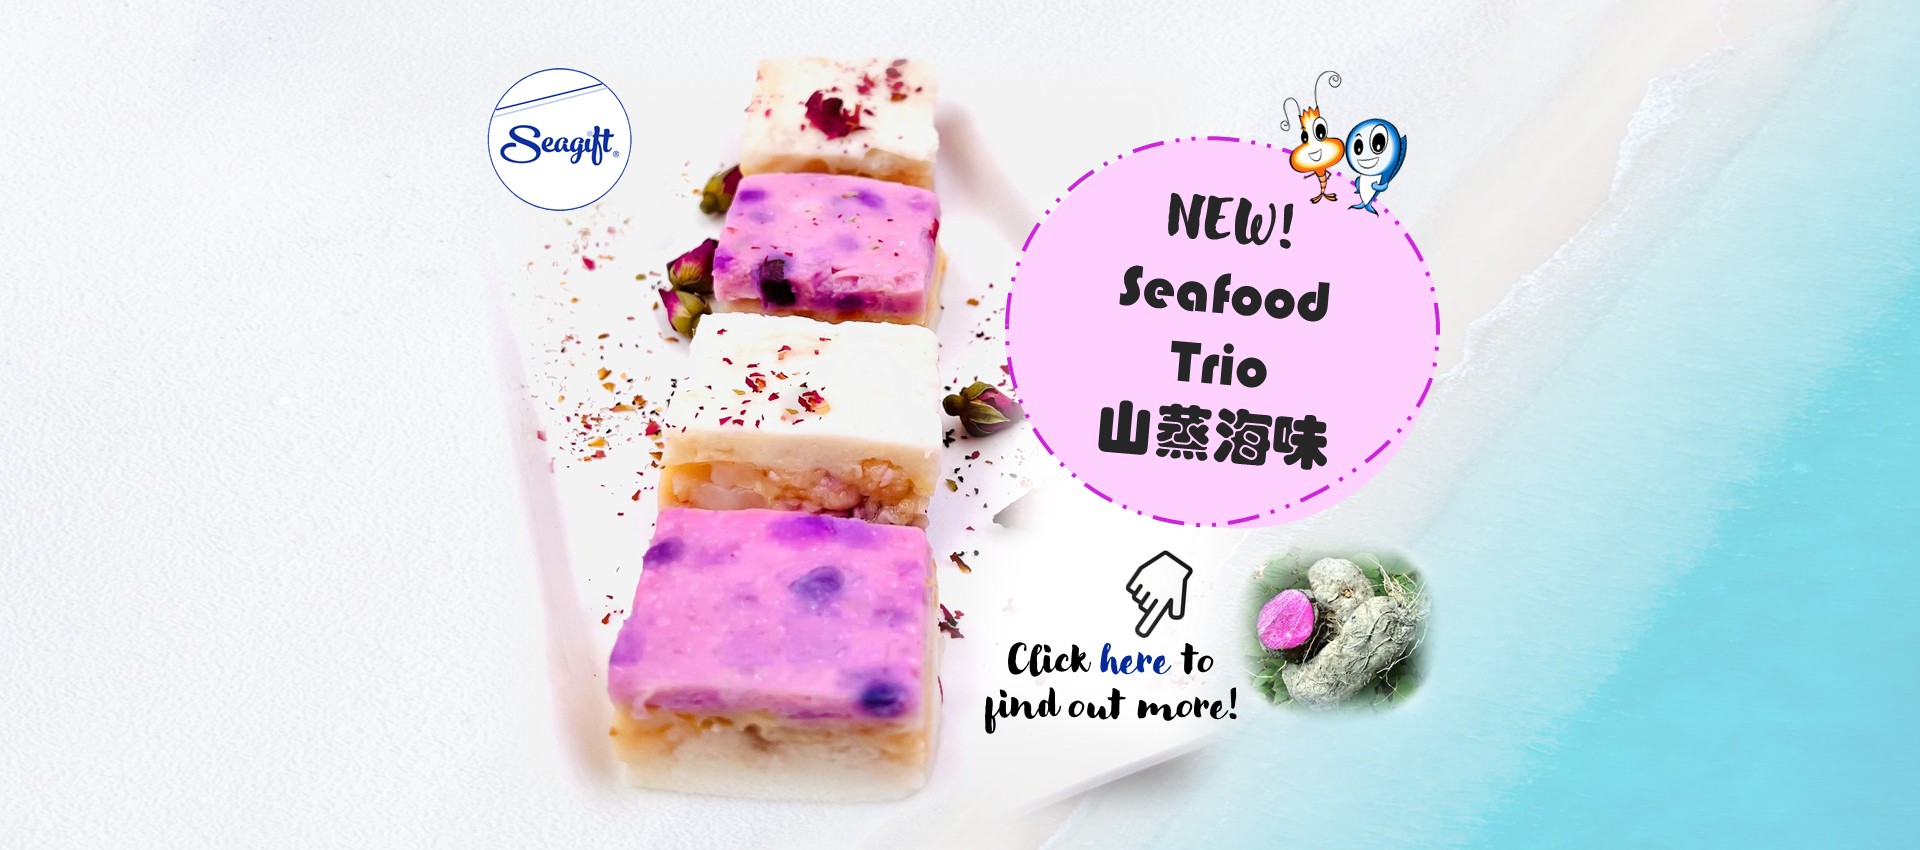 Seafood Trio New Product